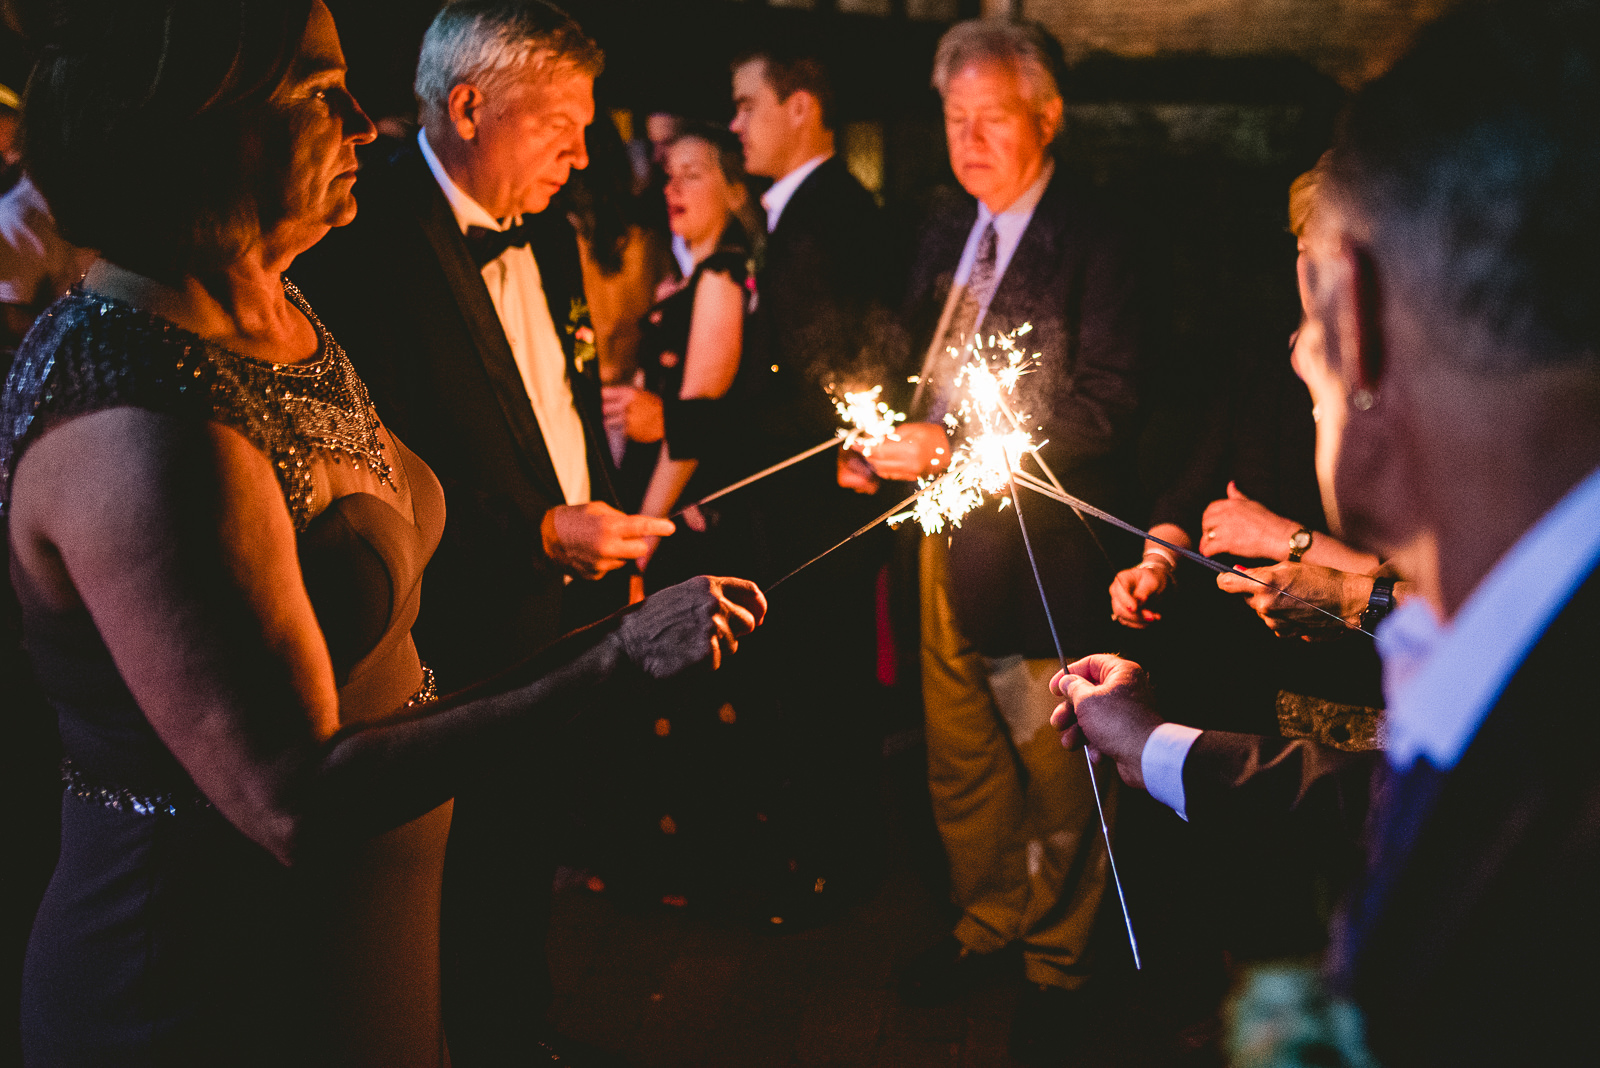 72 club of hillbrook sparklers at wedding - Club of Hillbrook Wedding // Jenna + Ben